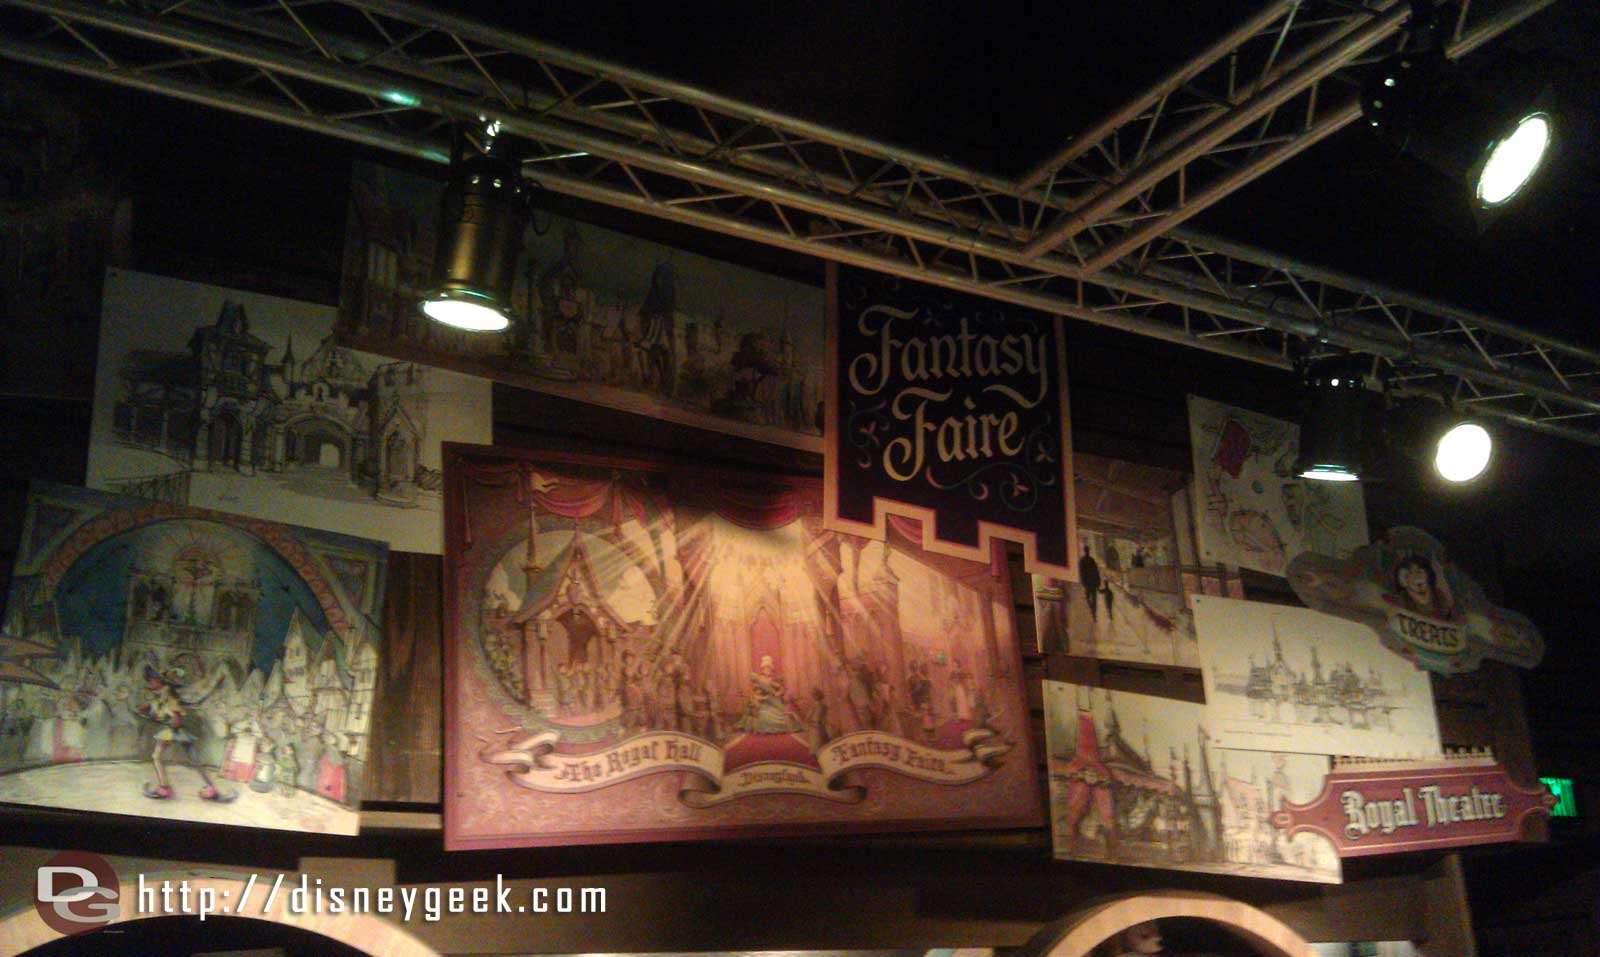 The Blue Sky Cellar Fantasy Faire exhibit is open this evening.